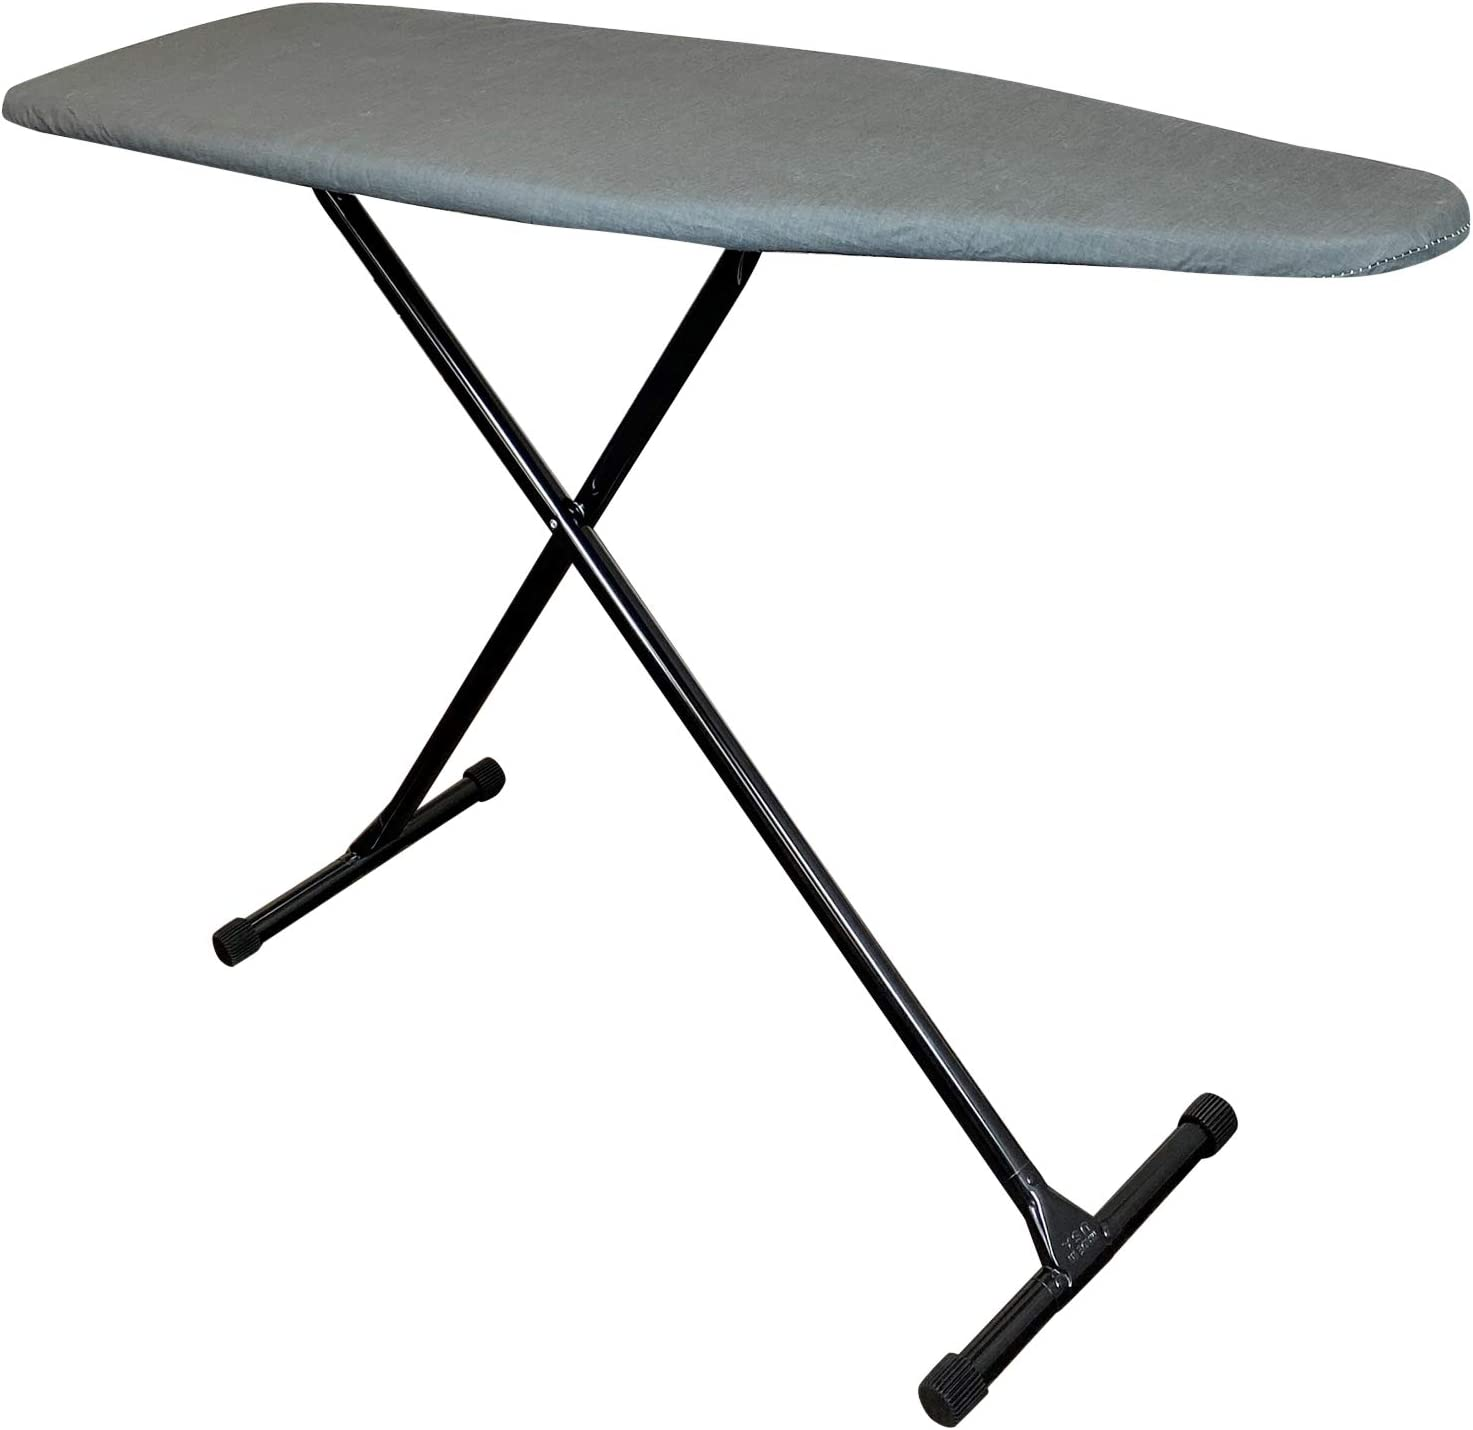 HOMZ T-Leg Ironing Board Made in Gray Charcoal Nippon regular agency Max 45% OFF and Bla The USA